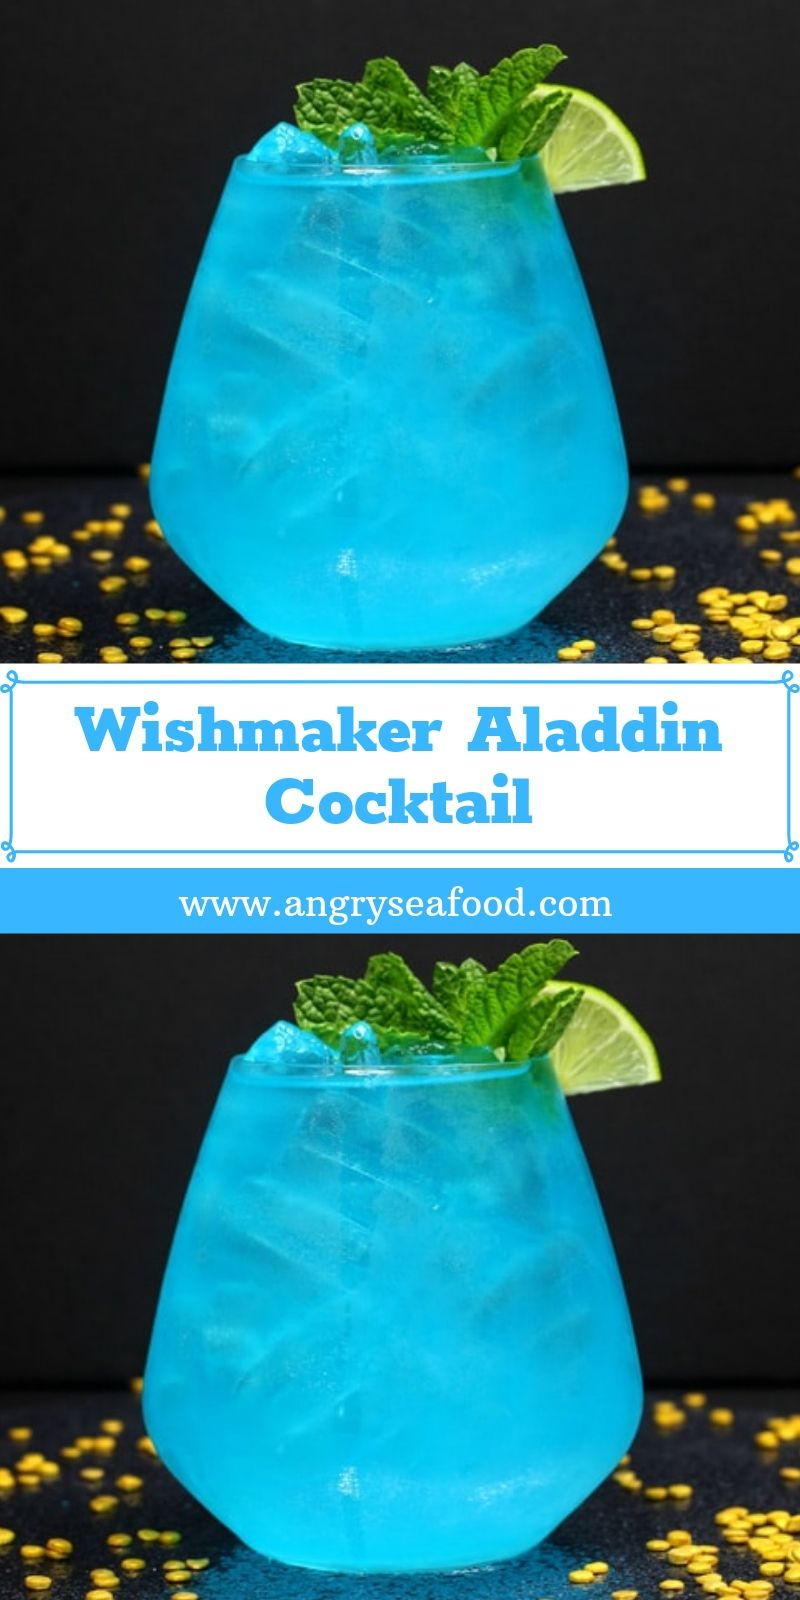 Wishmaker Aladdin Cocktail